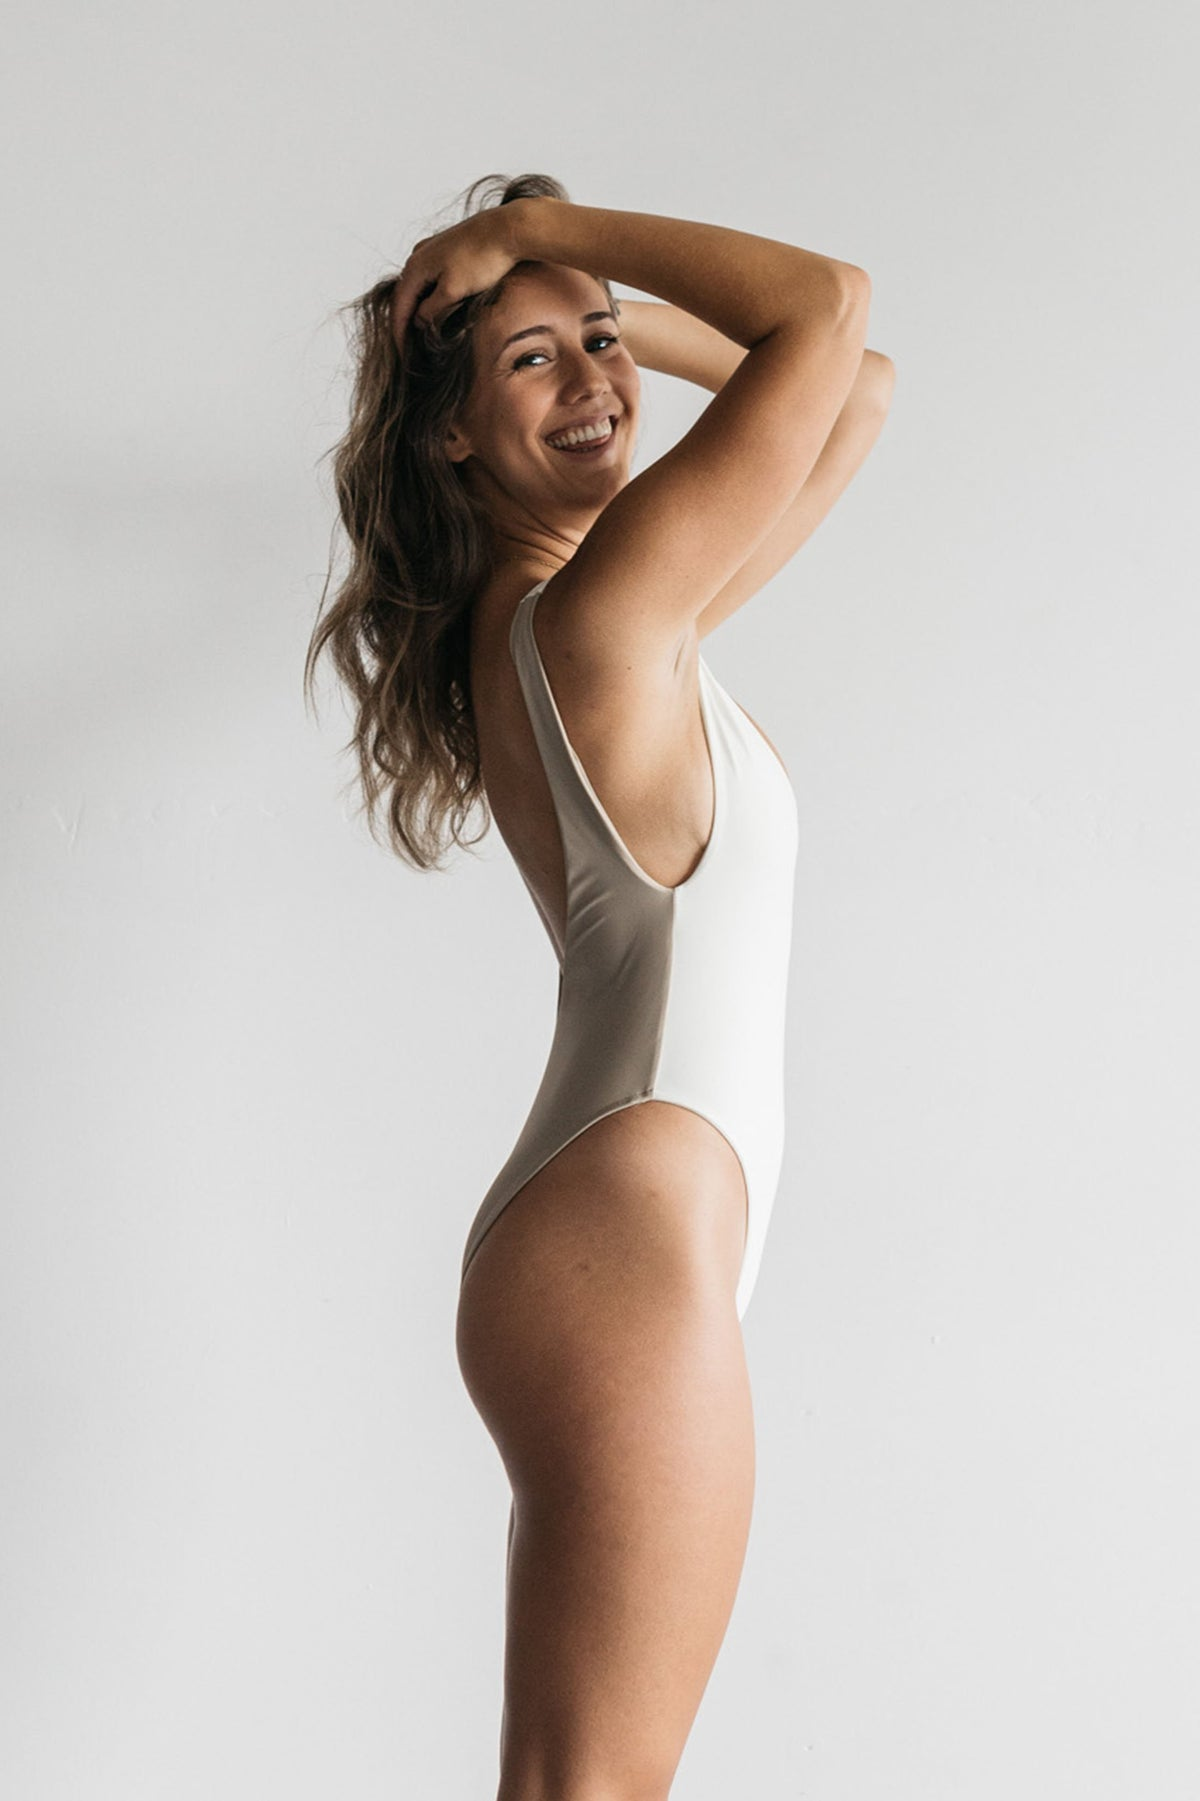 A woman standing to the side with her hands in her hair smiling wearing a white one piece swimsuit with a deep v neckline and minimal coverage.